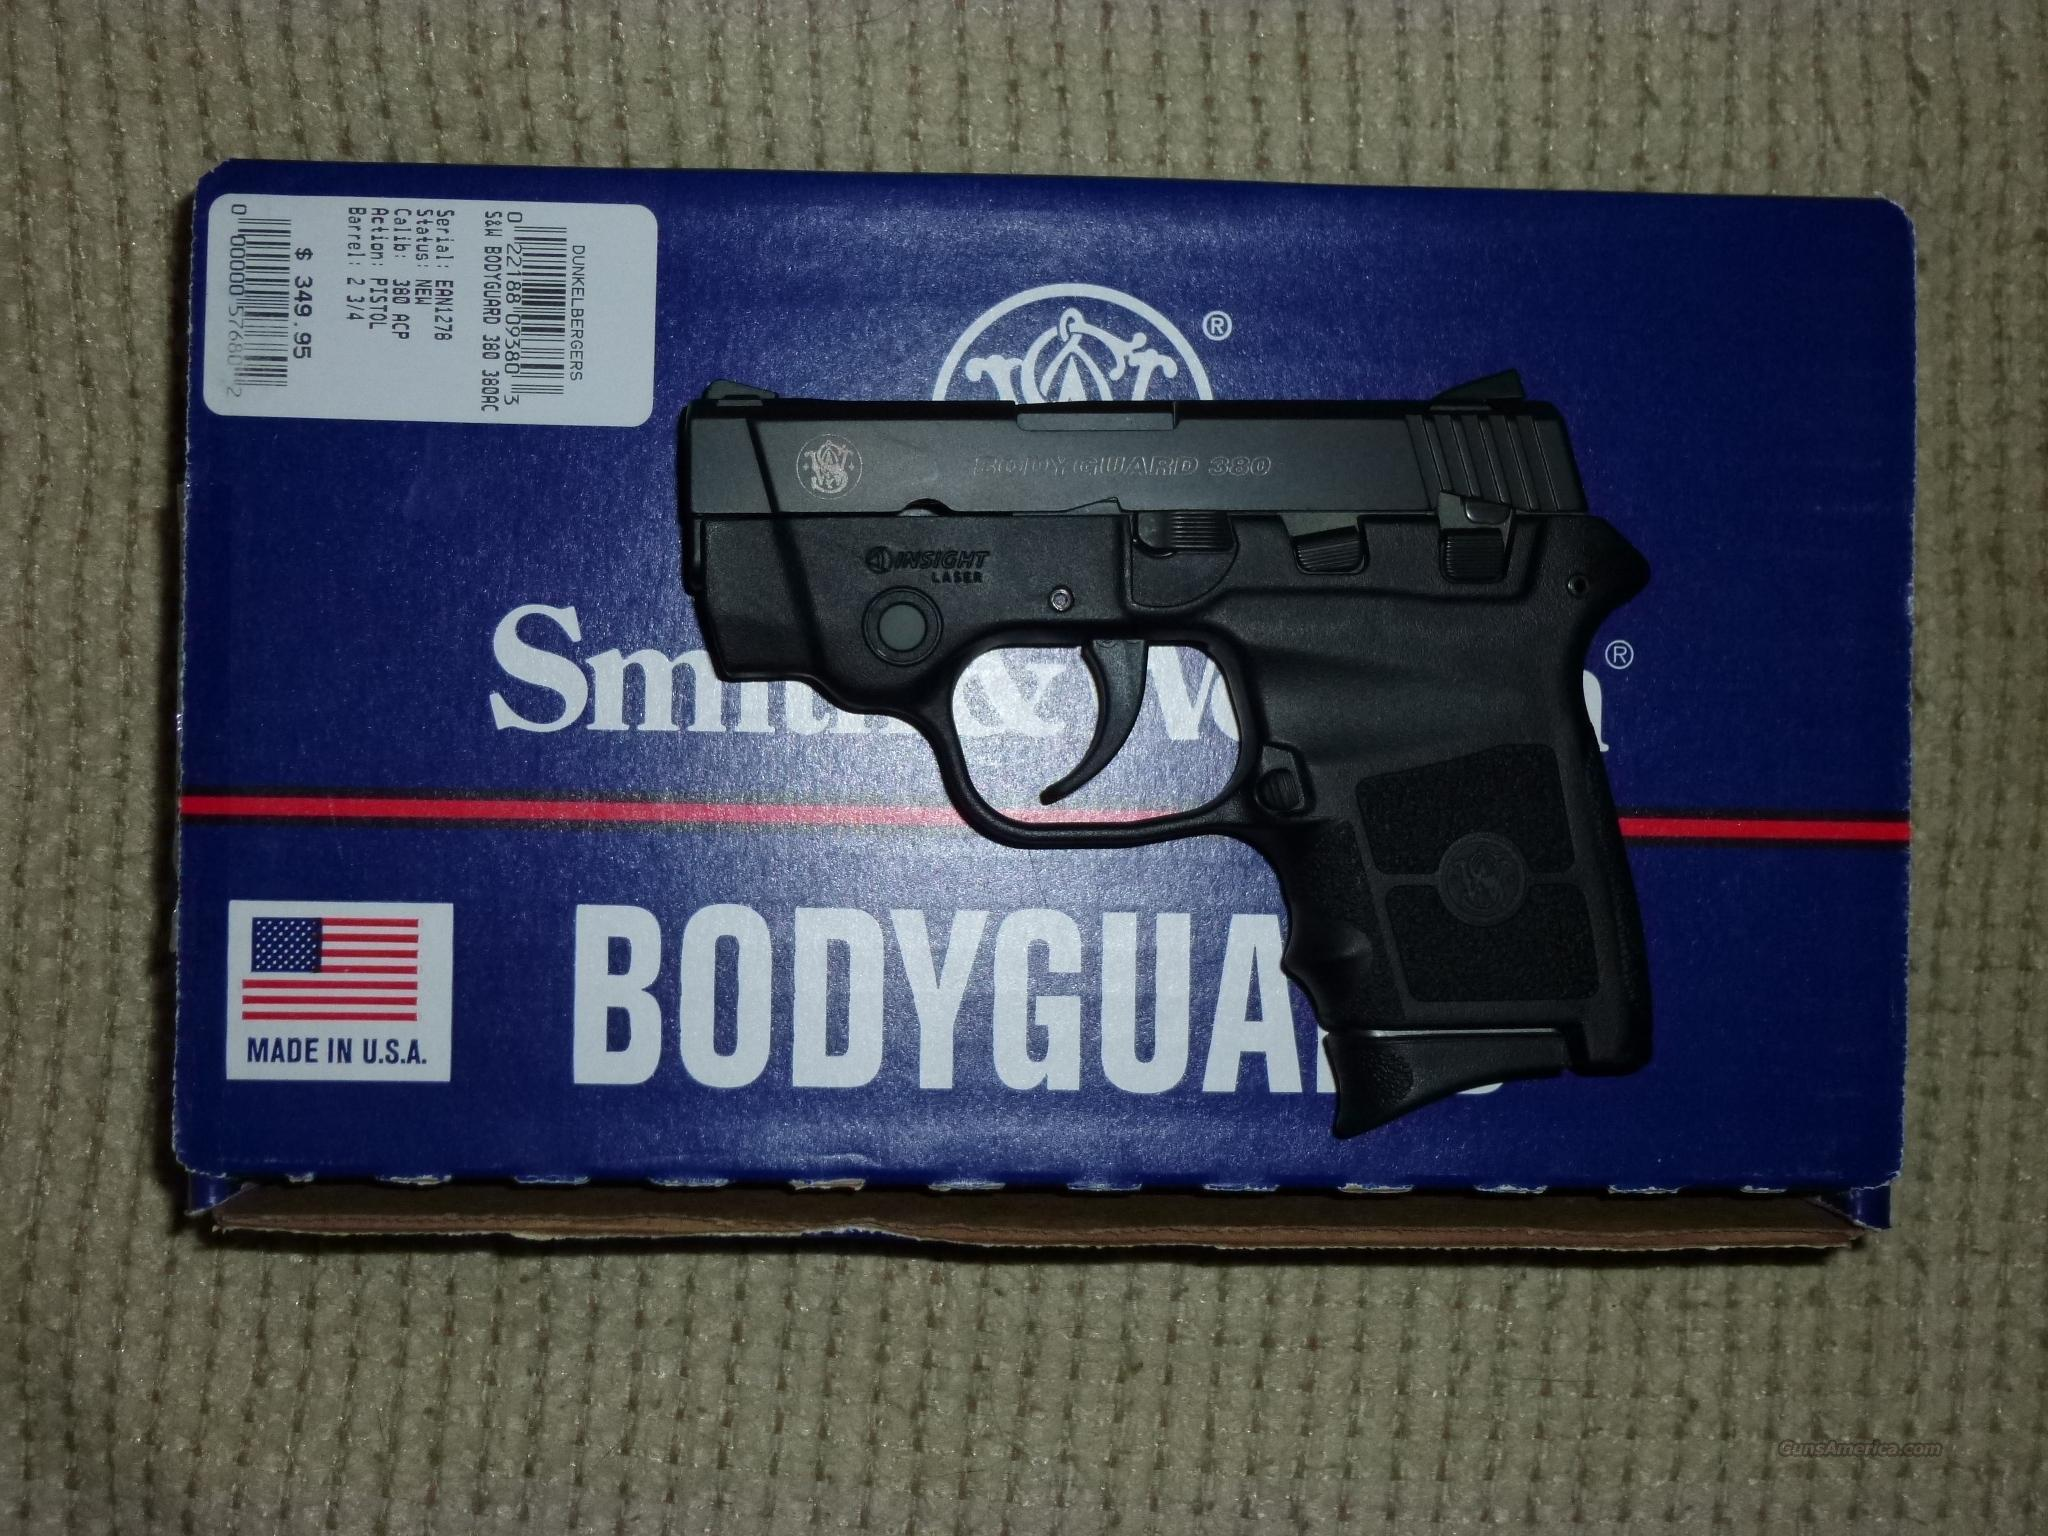 Smith & Wesson .380 Bodyguard with laser  Guns > Pistols > Smith & Wesson Pistols - Autos > Polymer Frame